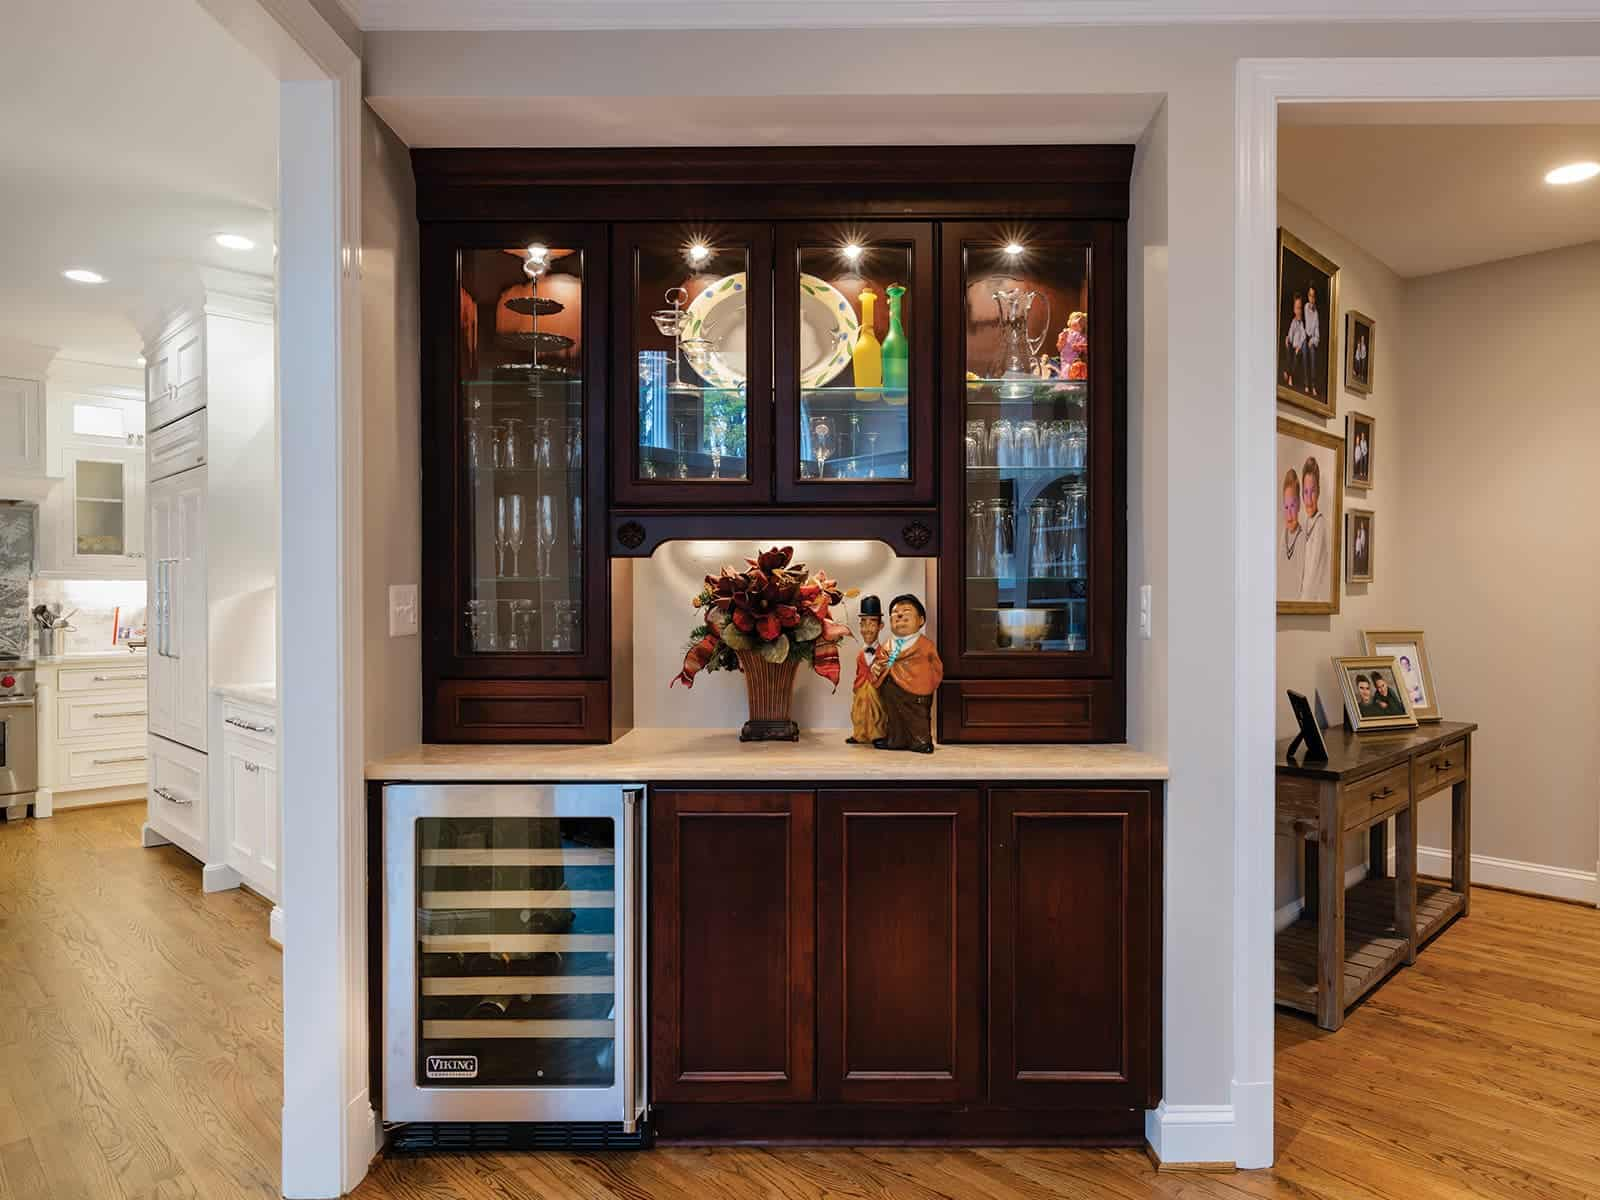 Bar Home The Next Step Up From A Bar Cart Would Be Converting A Side Table,  Sideboard, Or Credenza Into A Bar. Offering More Storage Space Than A Bar  Cart, ...